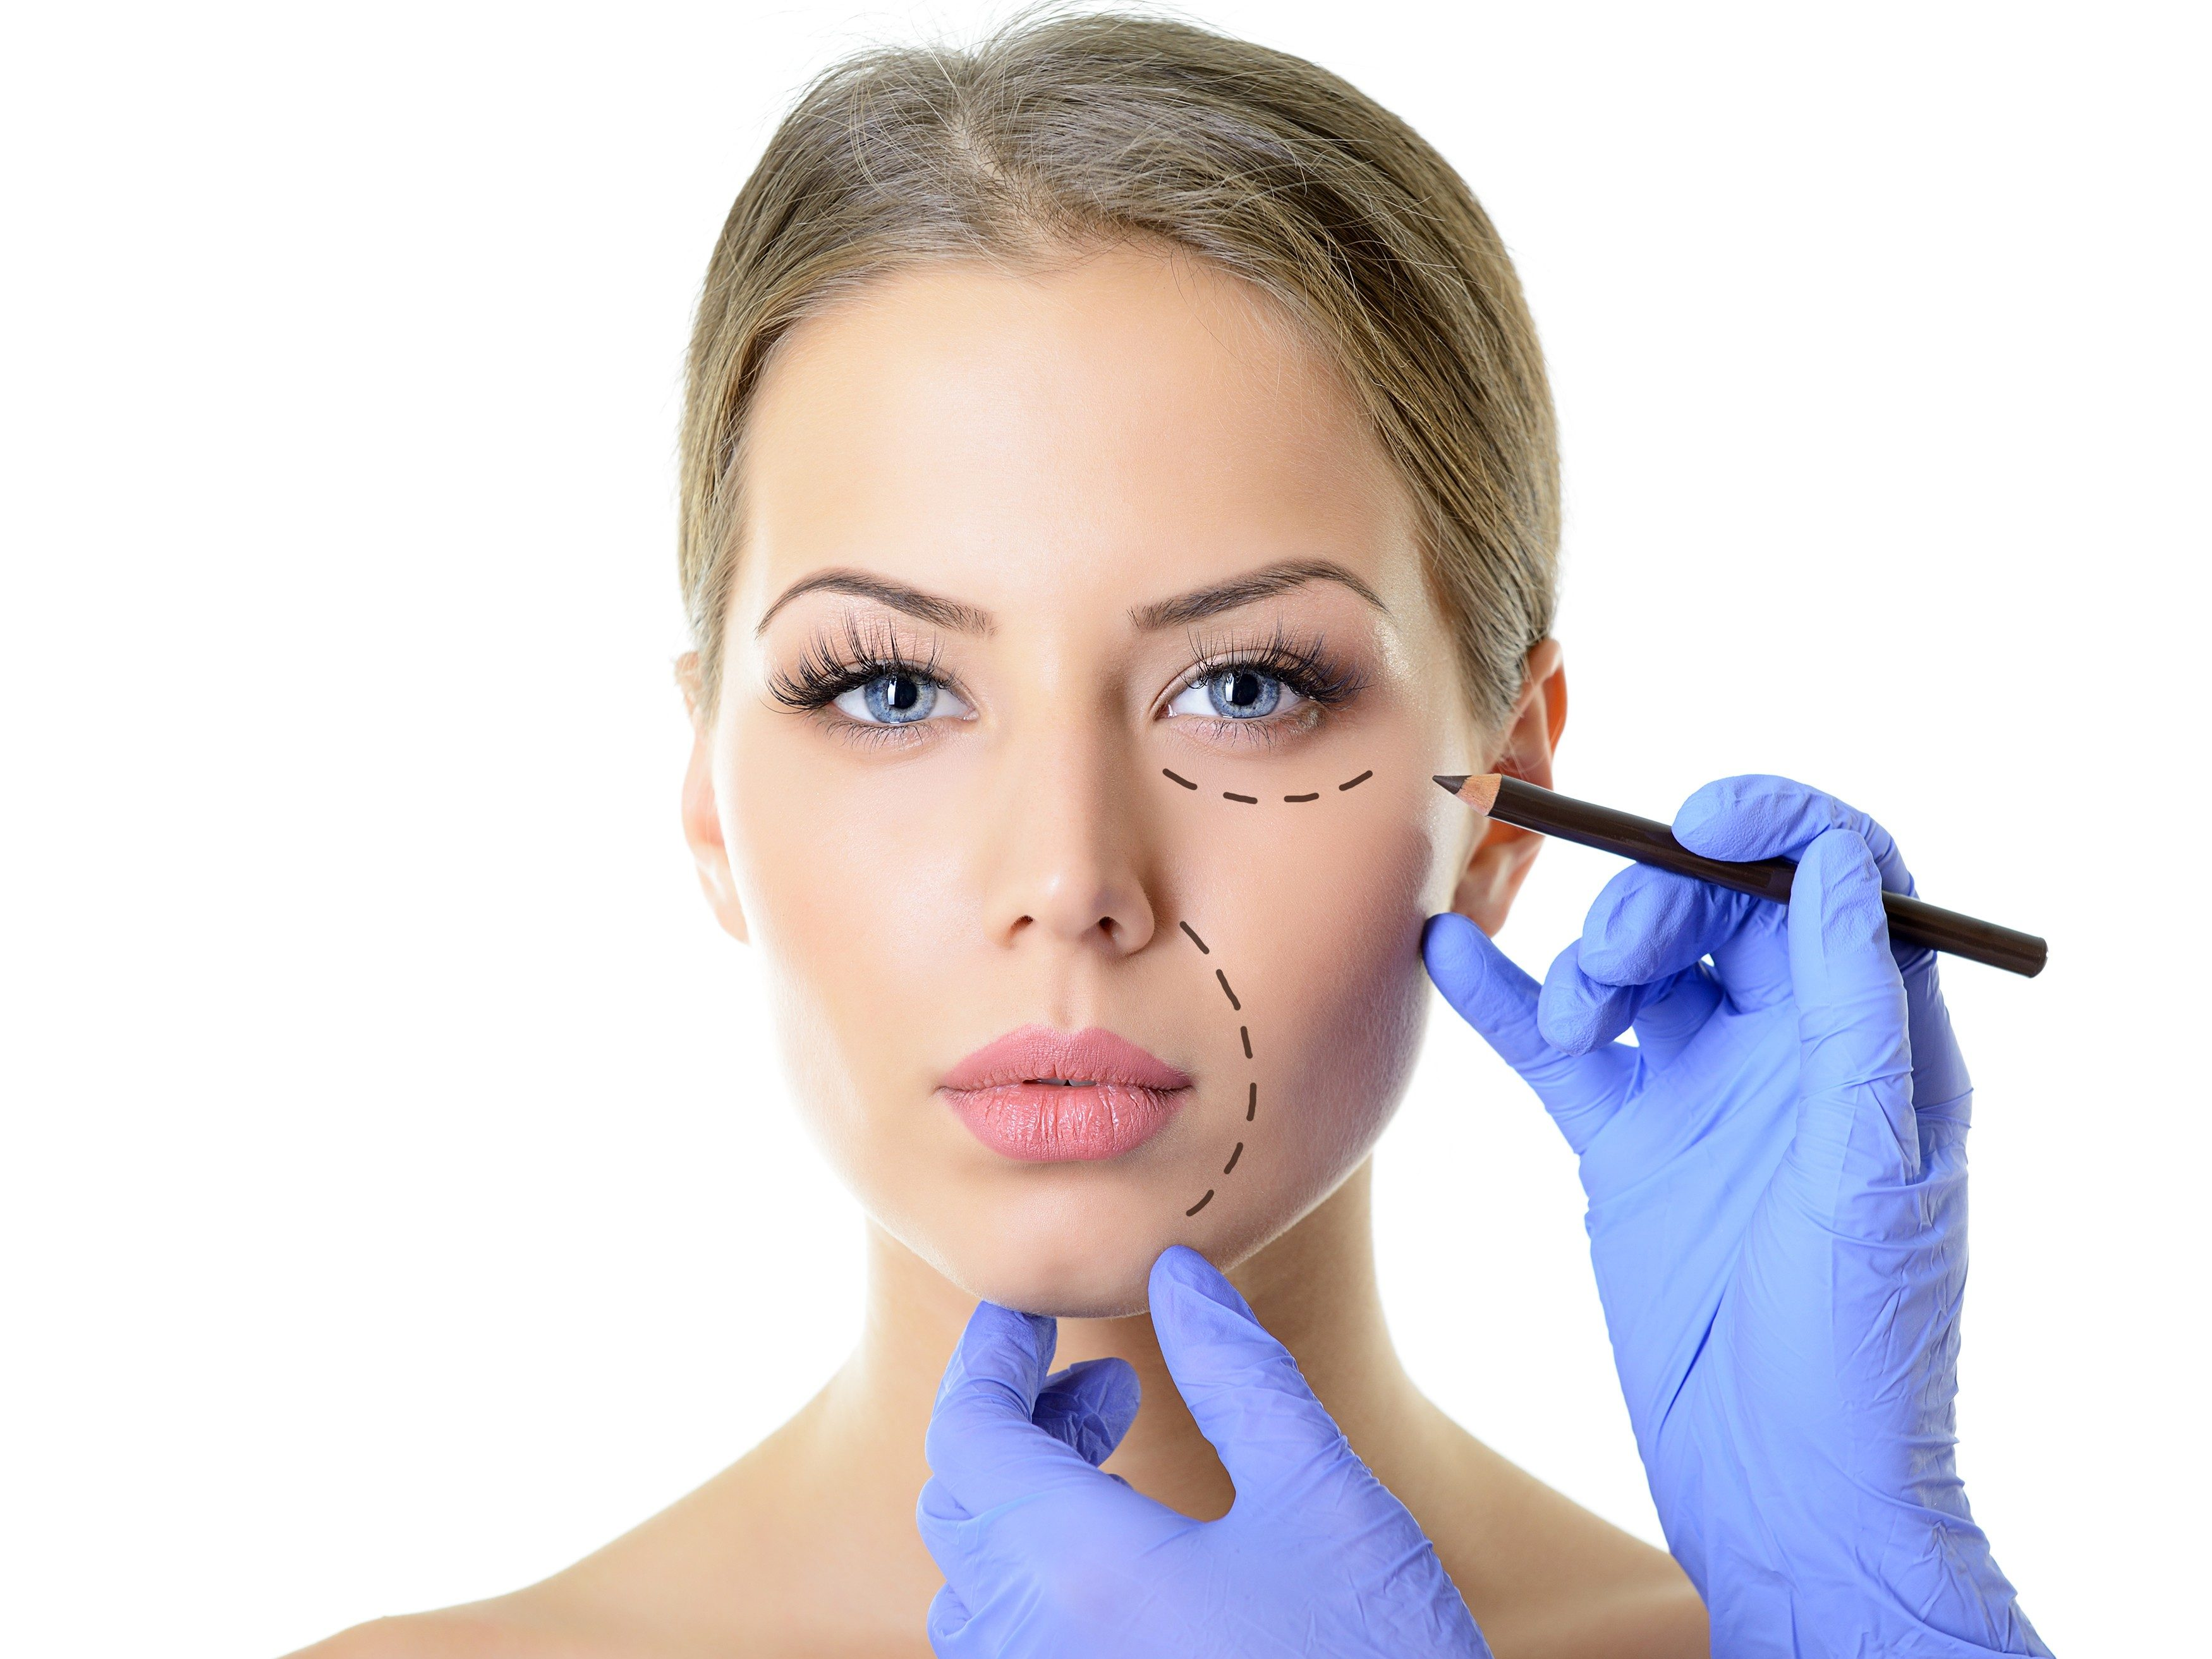 10 WAYS TO FAKE PLASTIC SURGERY